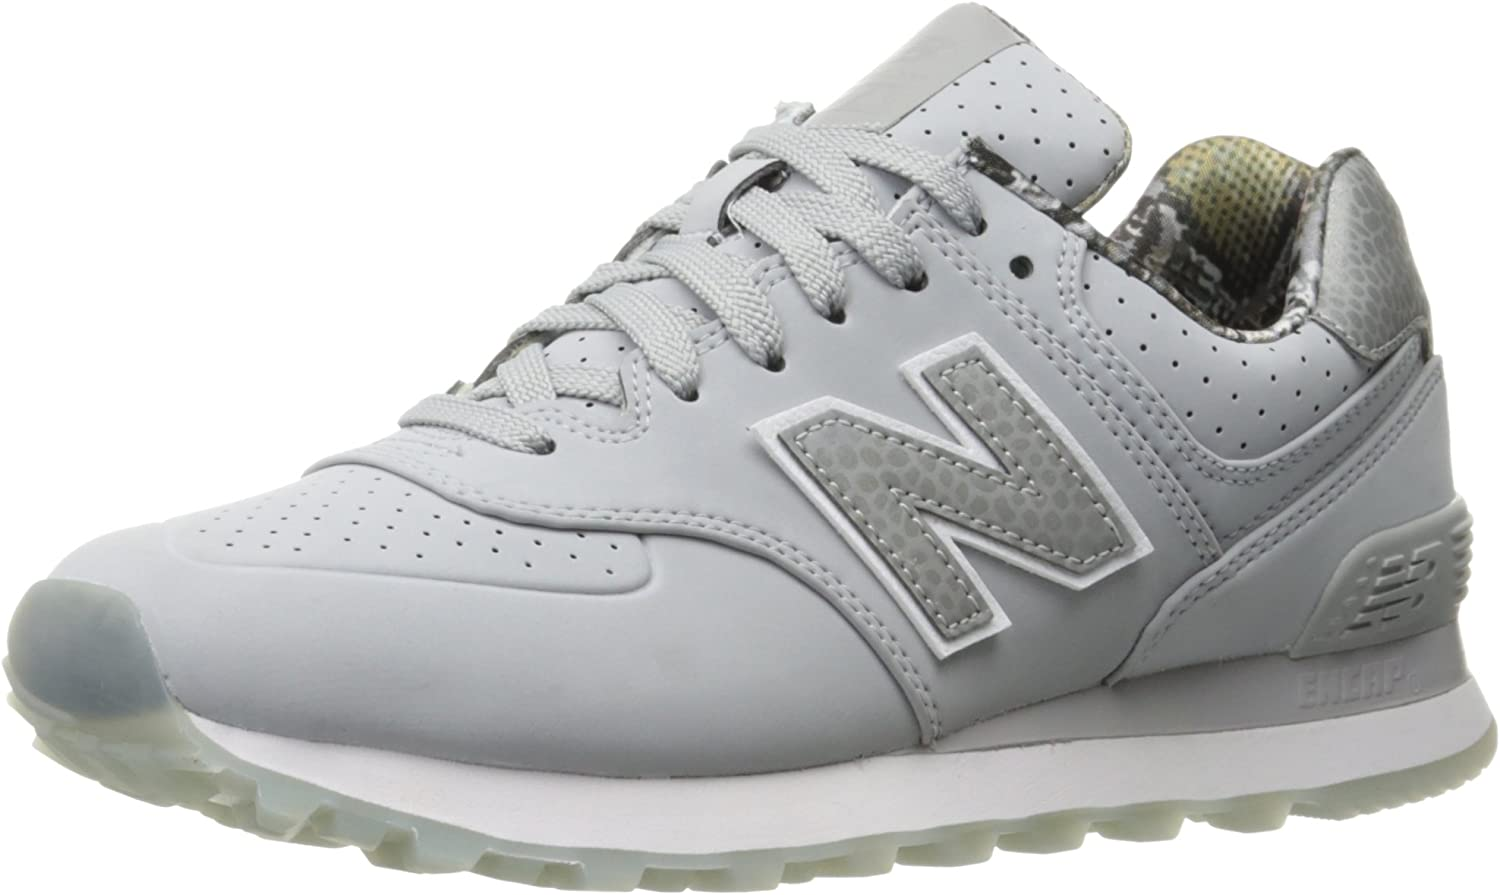 moderno y elegante en moda nuevo diseño estilo popular Amazon.com | New Balance Women's WL574 Luxe Rep Sneaker | Shoes